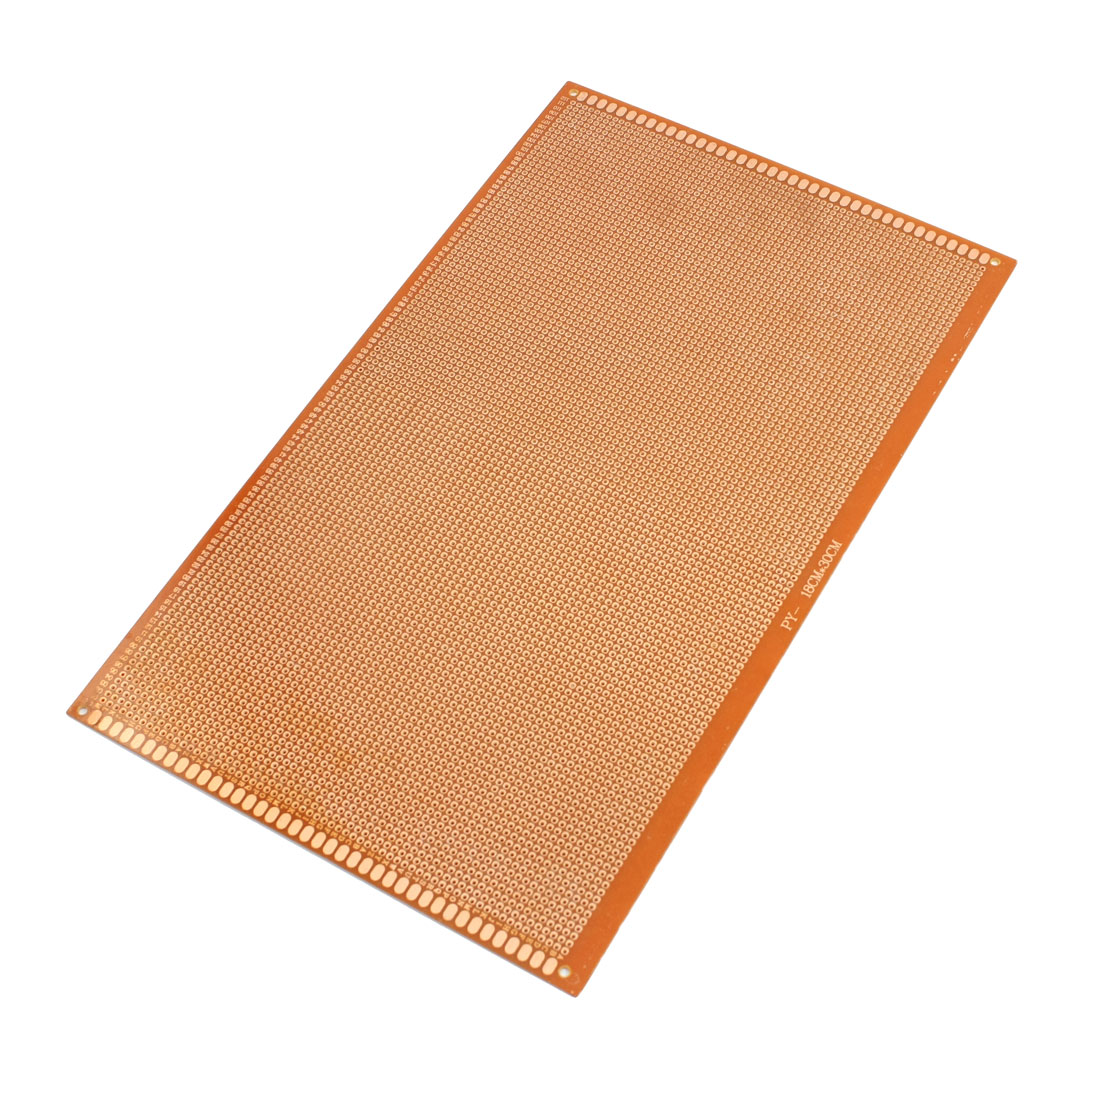 2.54mm Pitch PCB Board Prototype Breadboard Single Side 180mm x 300mm Brown